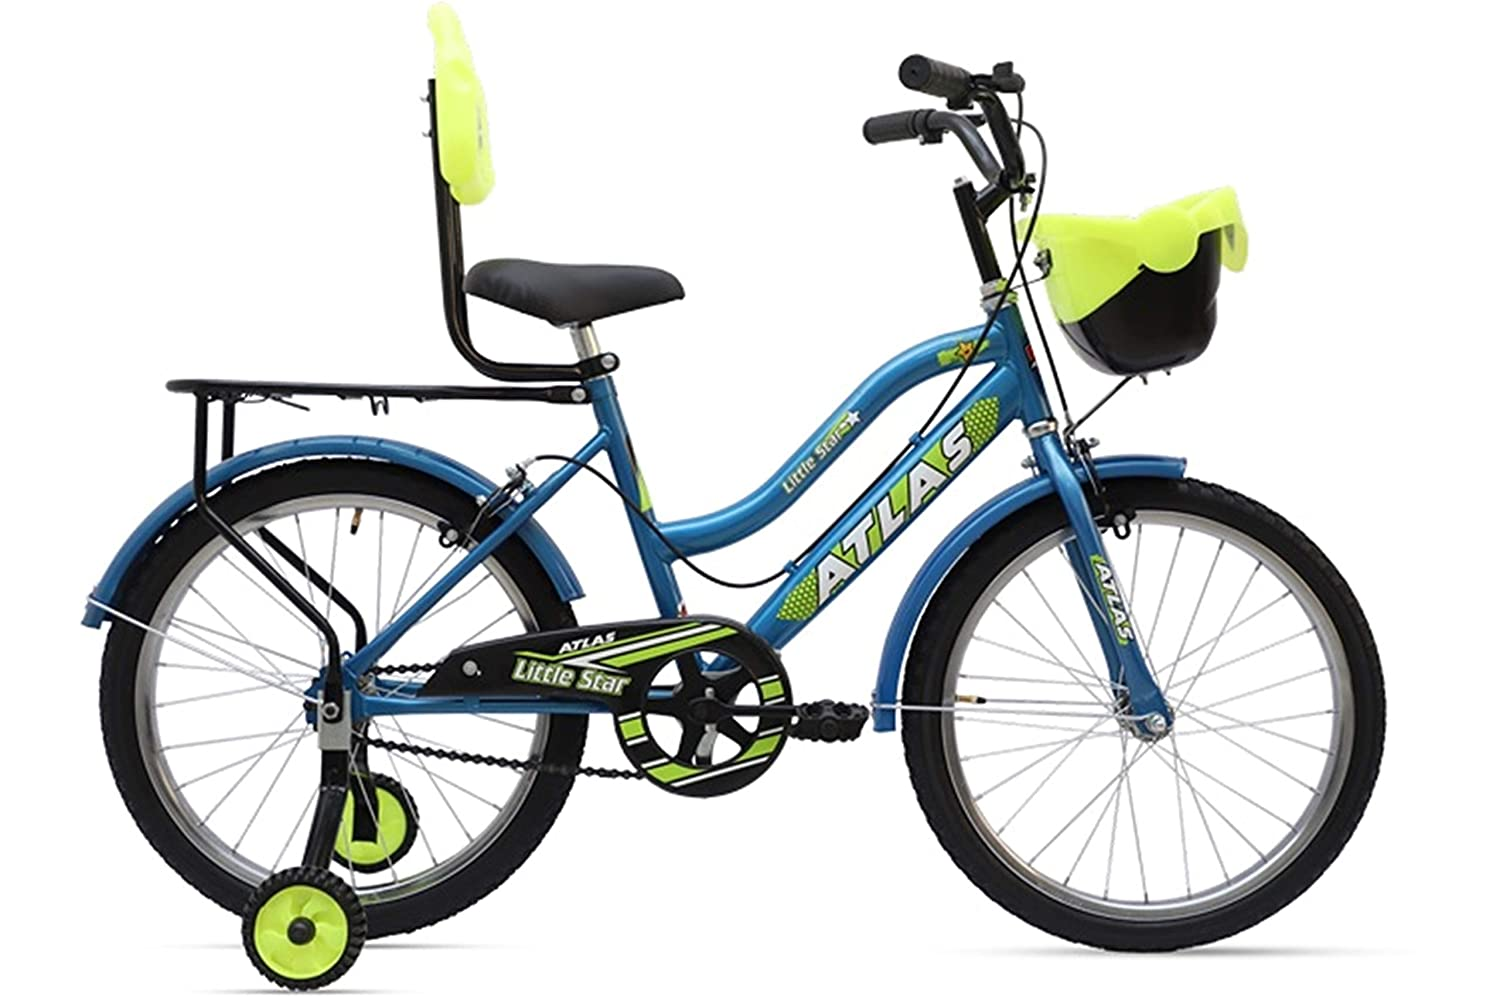 eff18948f06 Buy Atlas Little Star Kids Bicycle 20T Online at Low Prices in India -  Amazon.in